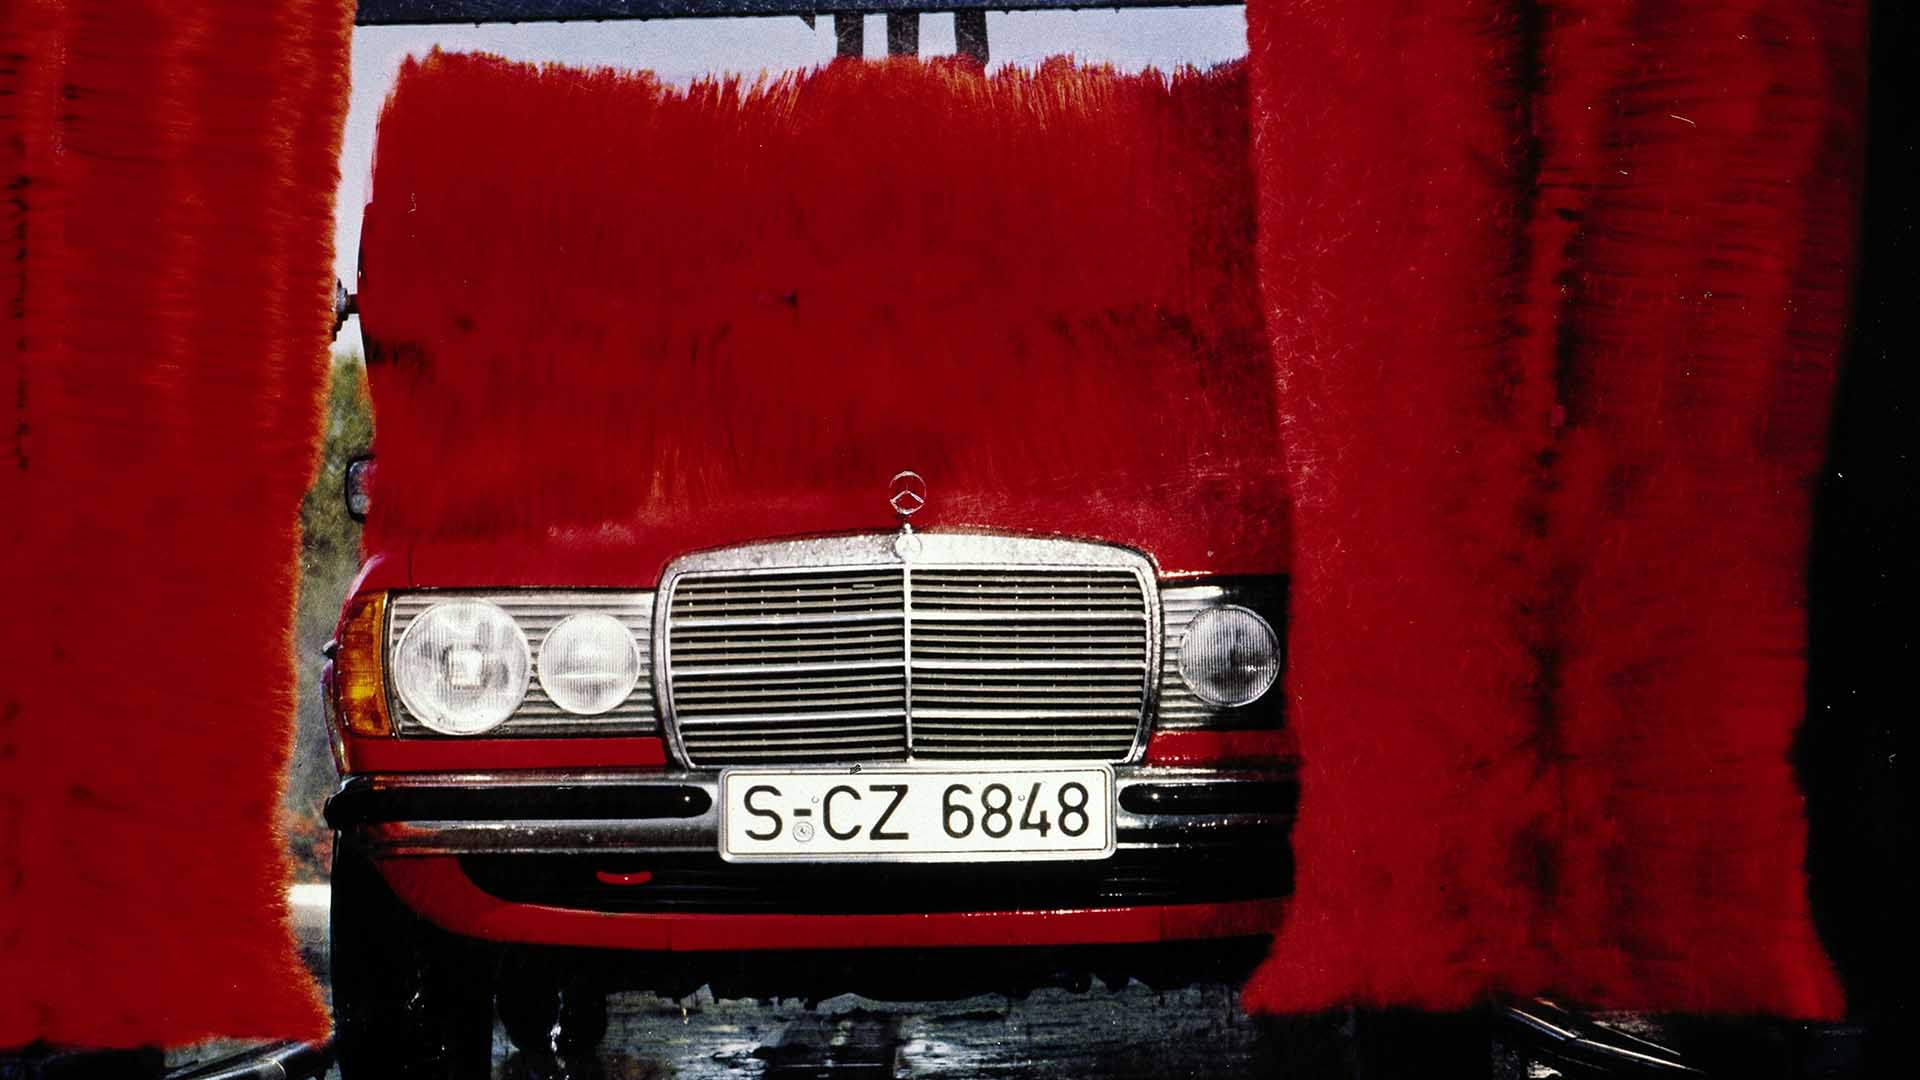 Mercedes W123 at the car wash